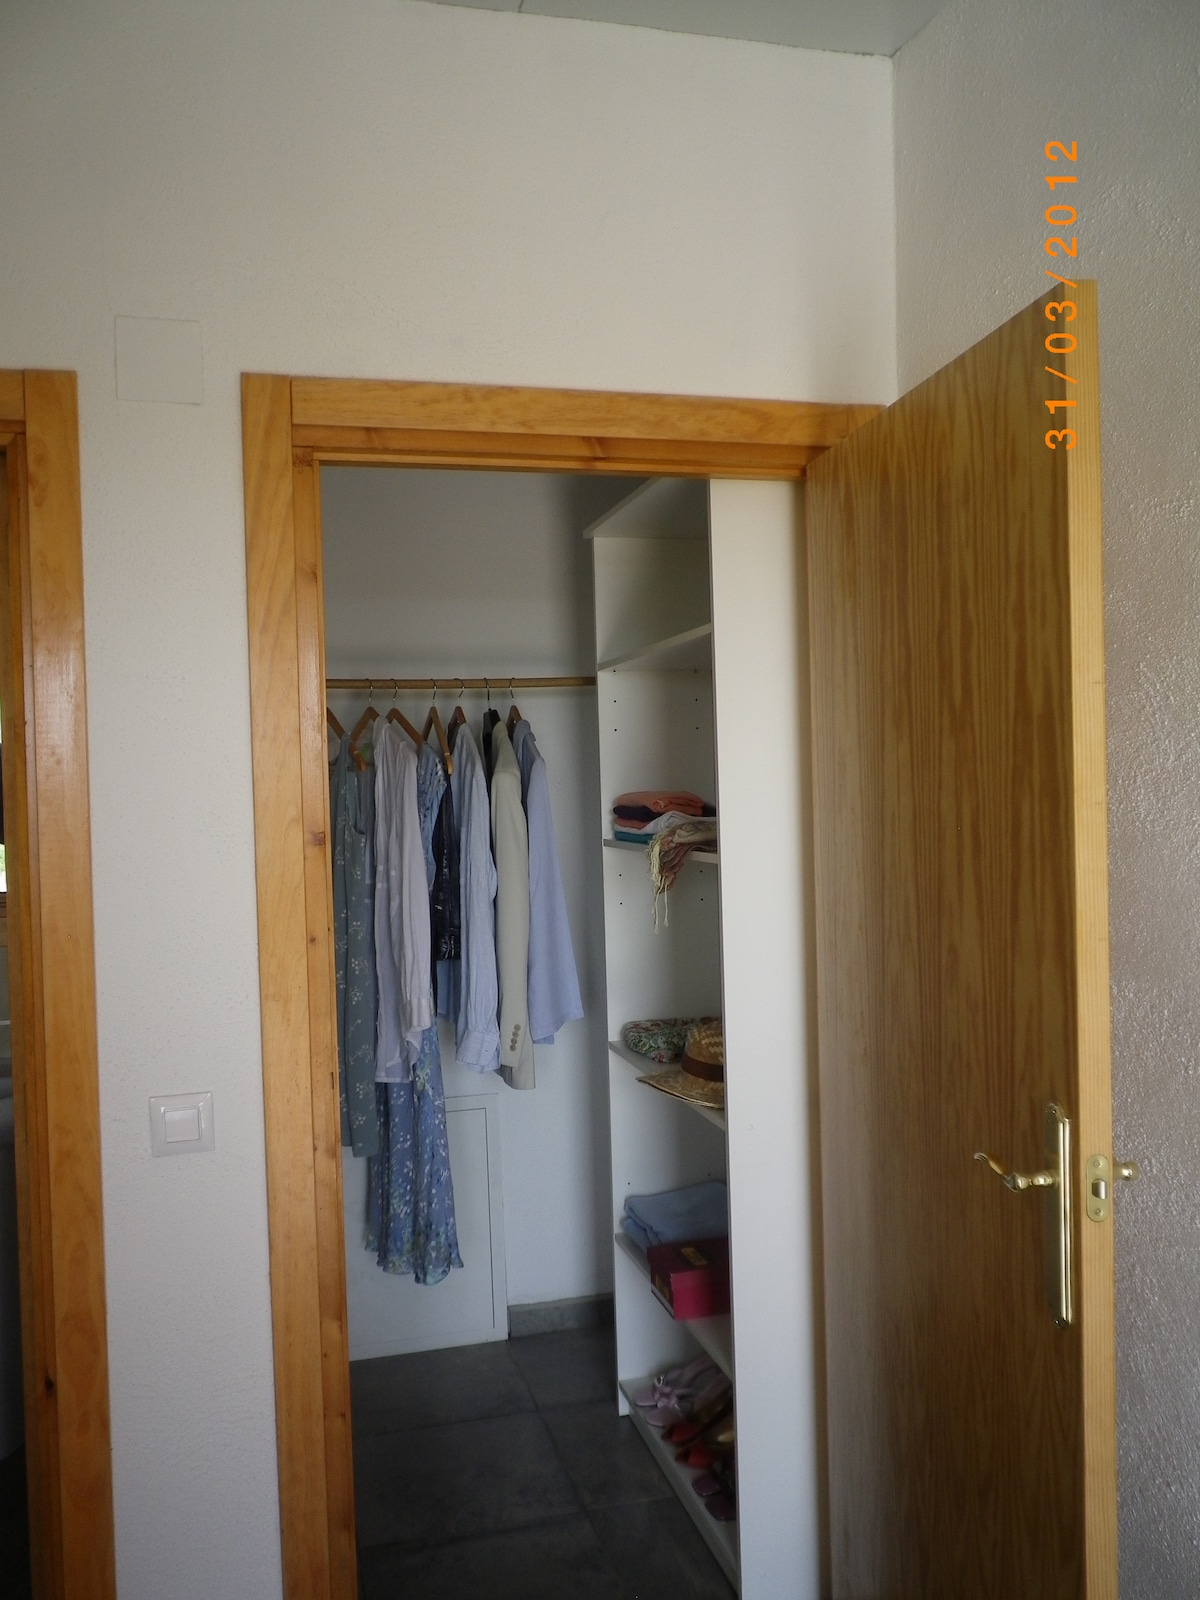 Peeking into the wardrobe, lots of space for hanging and shelves too.